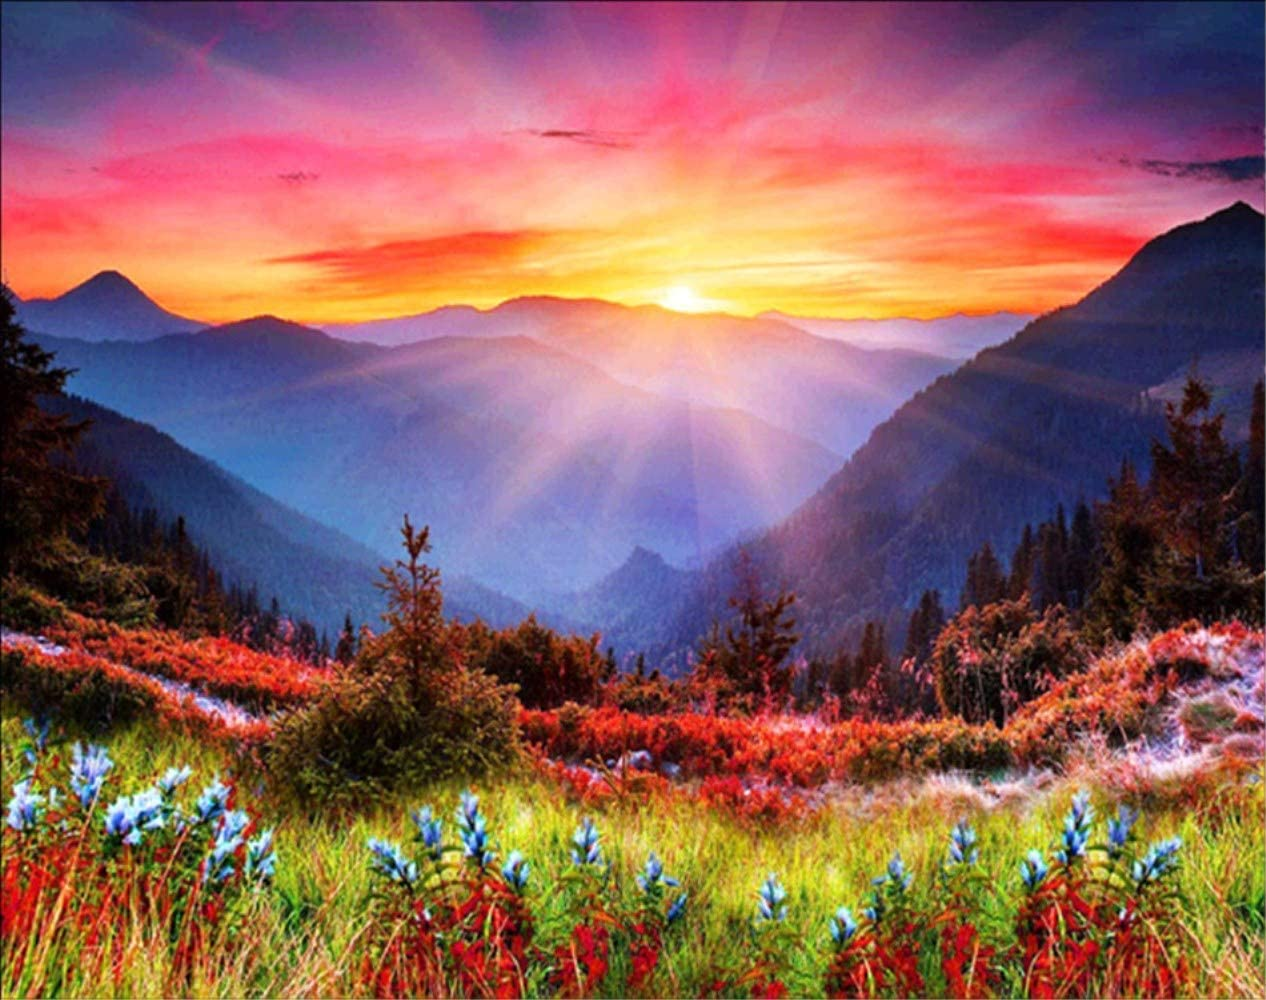 Mountain Flower Sunrise Diamond Painting - PigPigBoss 5D Full Diamond Embroidery Arts, Crafts, Sewing Cross Stitch Kits - Crystal Diamond Dots Kits for Adults (15.7 x 11.8 inches)